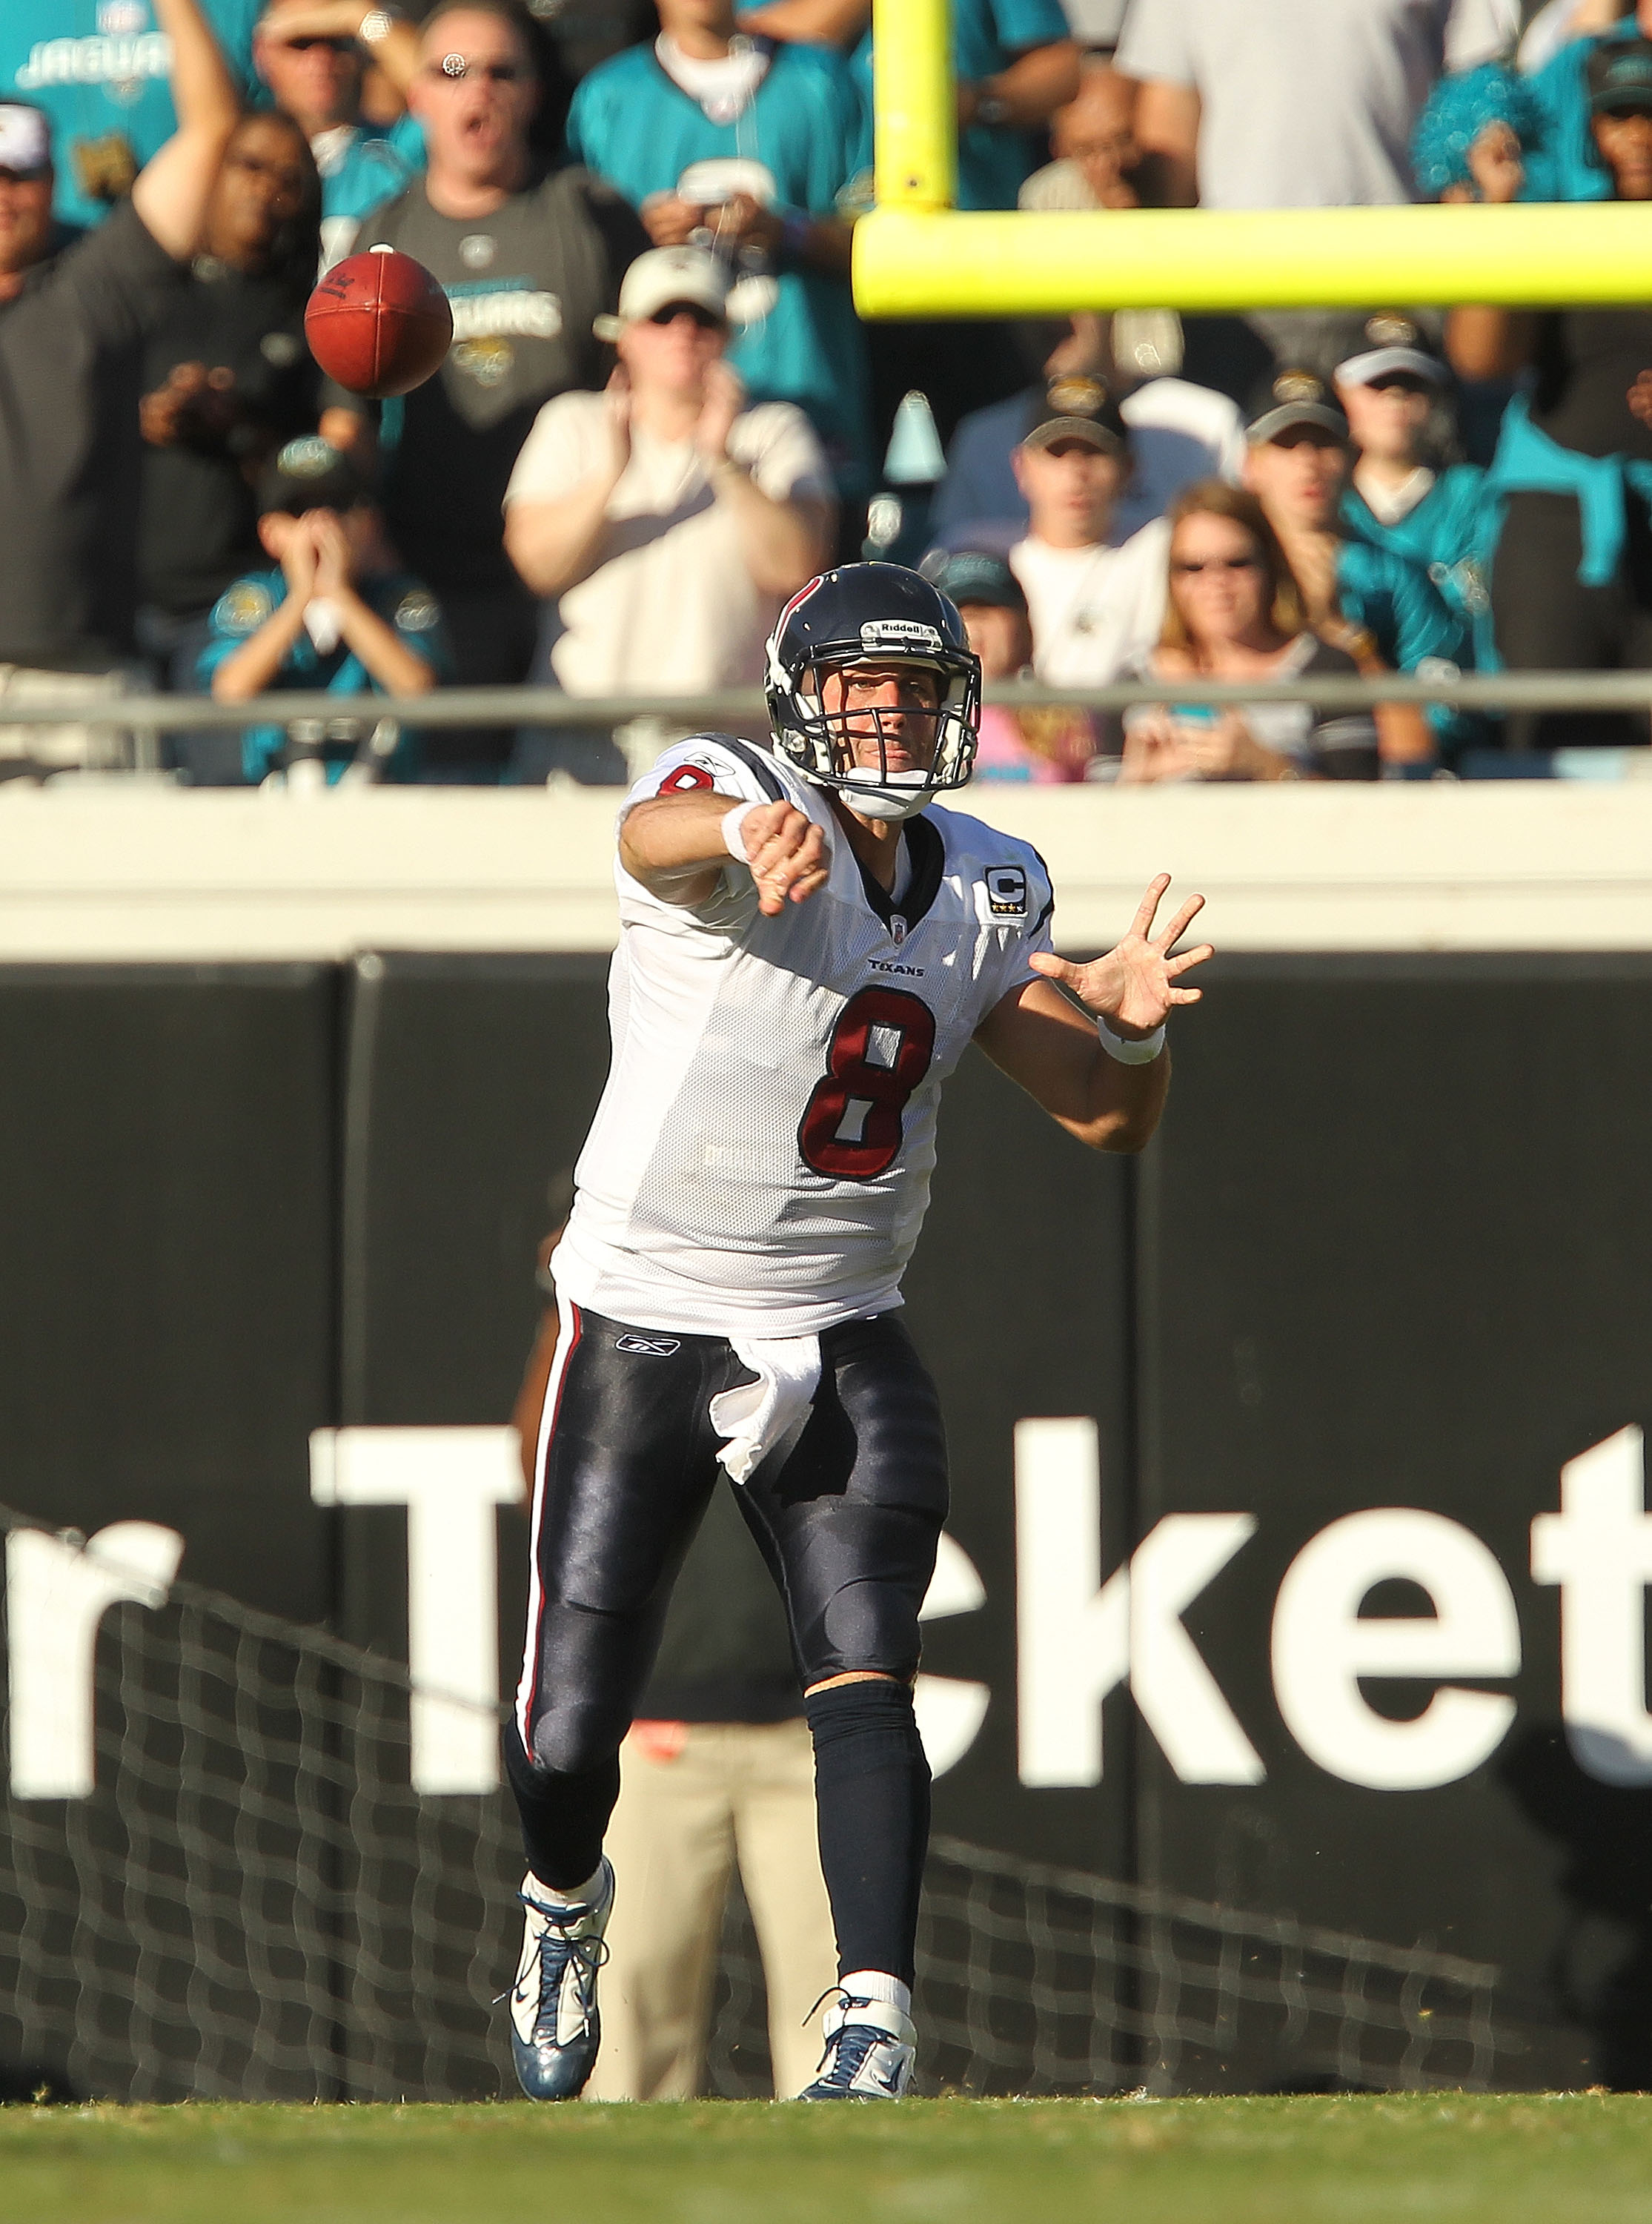 JACKSONVILLE, FL - NOVEMBER 14:  Matt Schaub #8 of the Houston Texans throws a pass during a game against the Jacksonville Jaguars at EverBank Field on November 14, 2010 in Jacksonville, Florida.  (Photo by Mike Ehrmann/Getty Images)